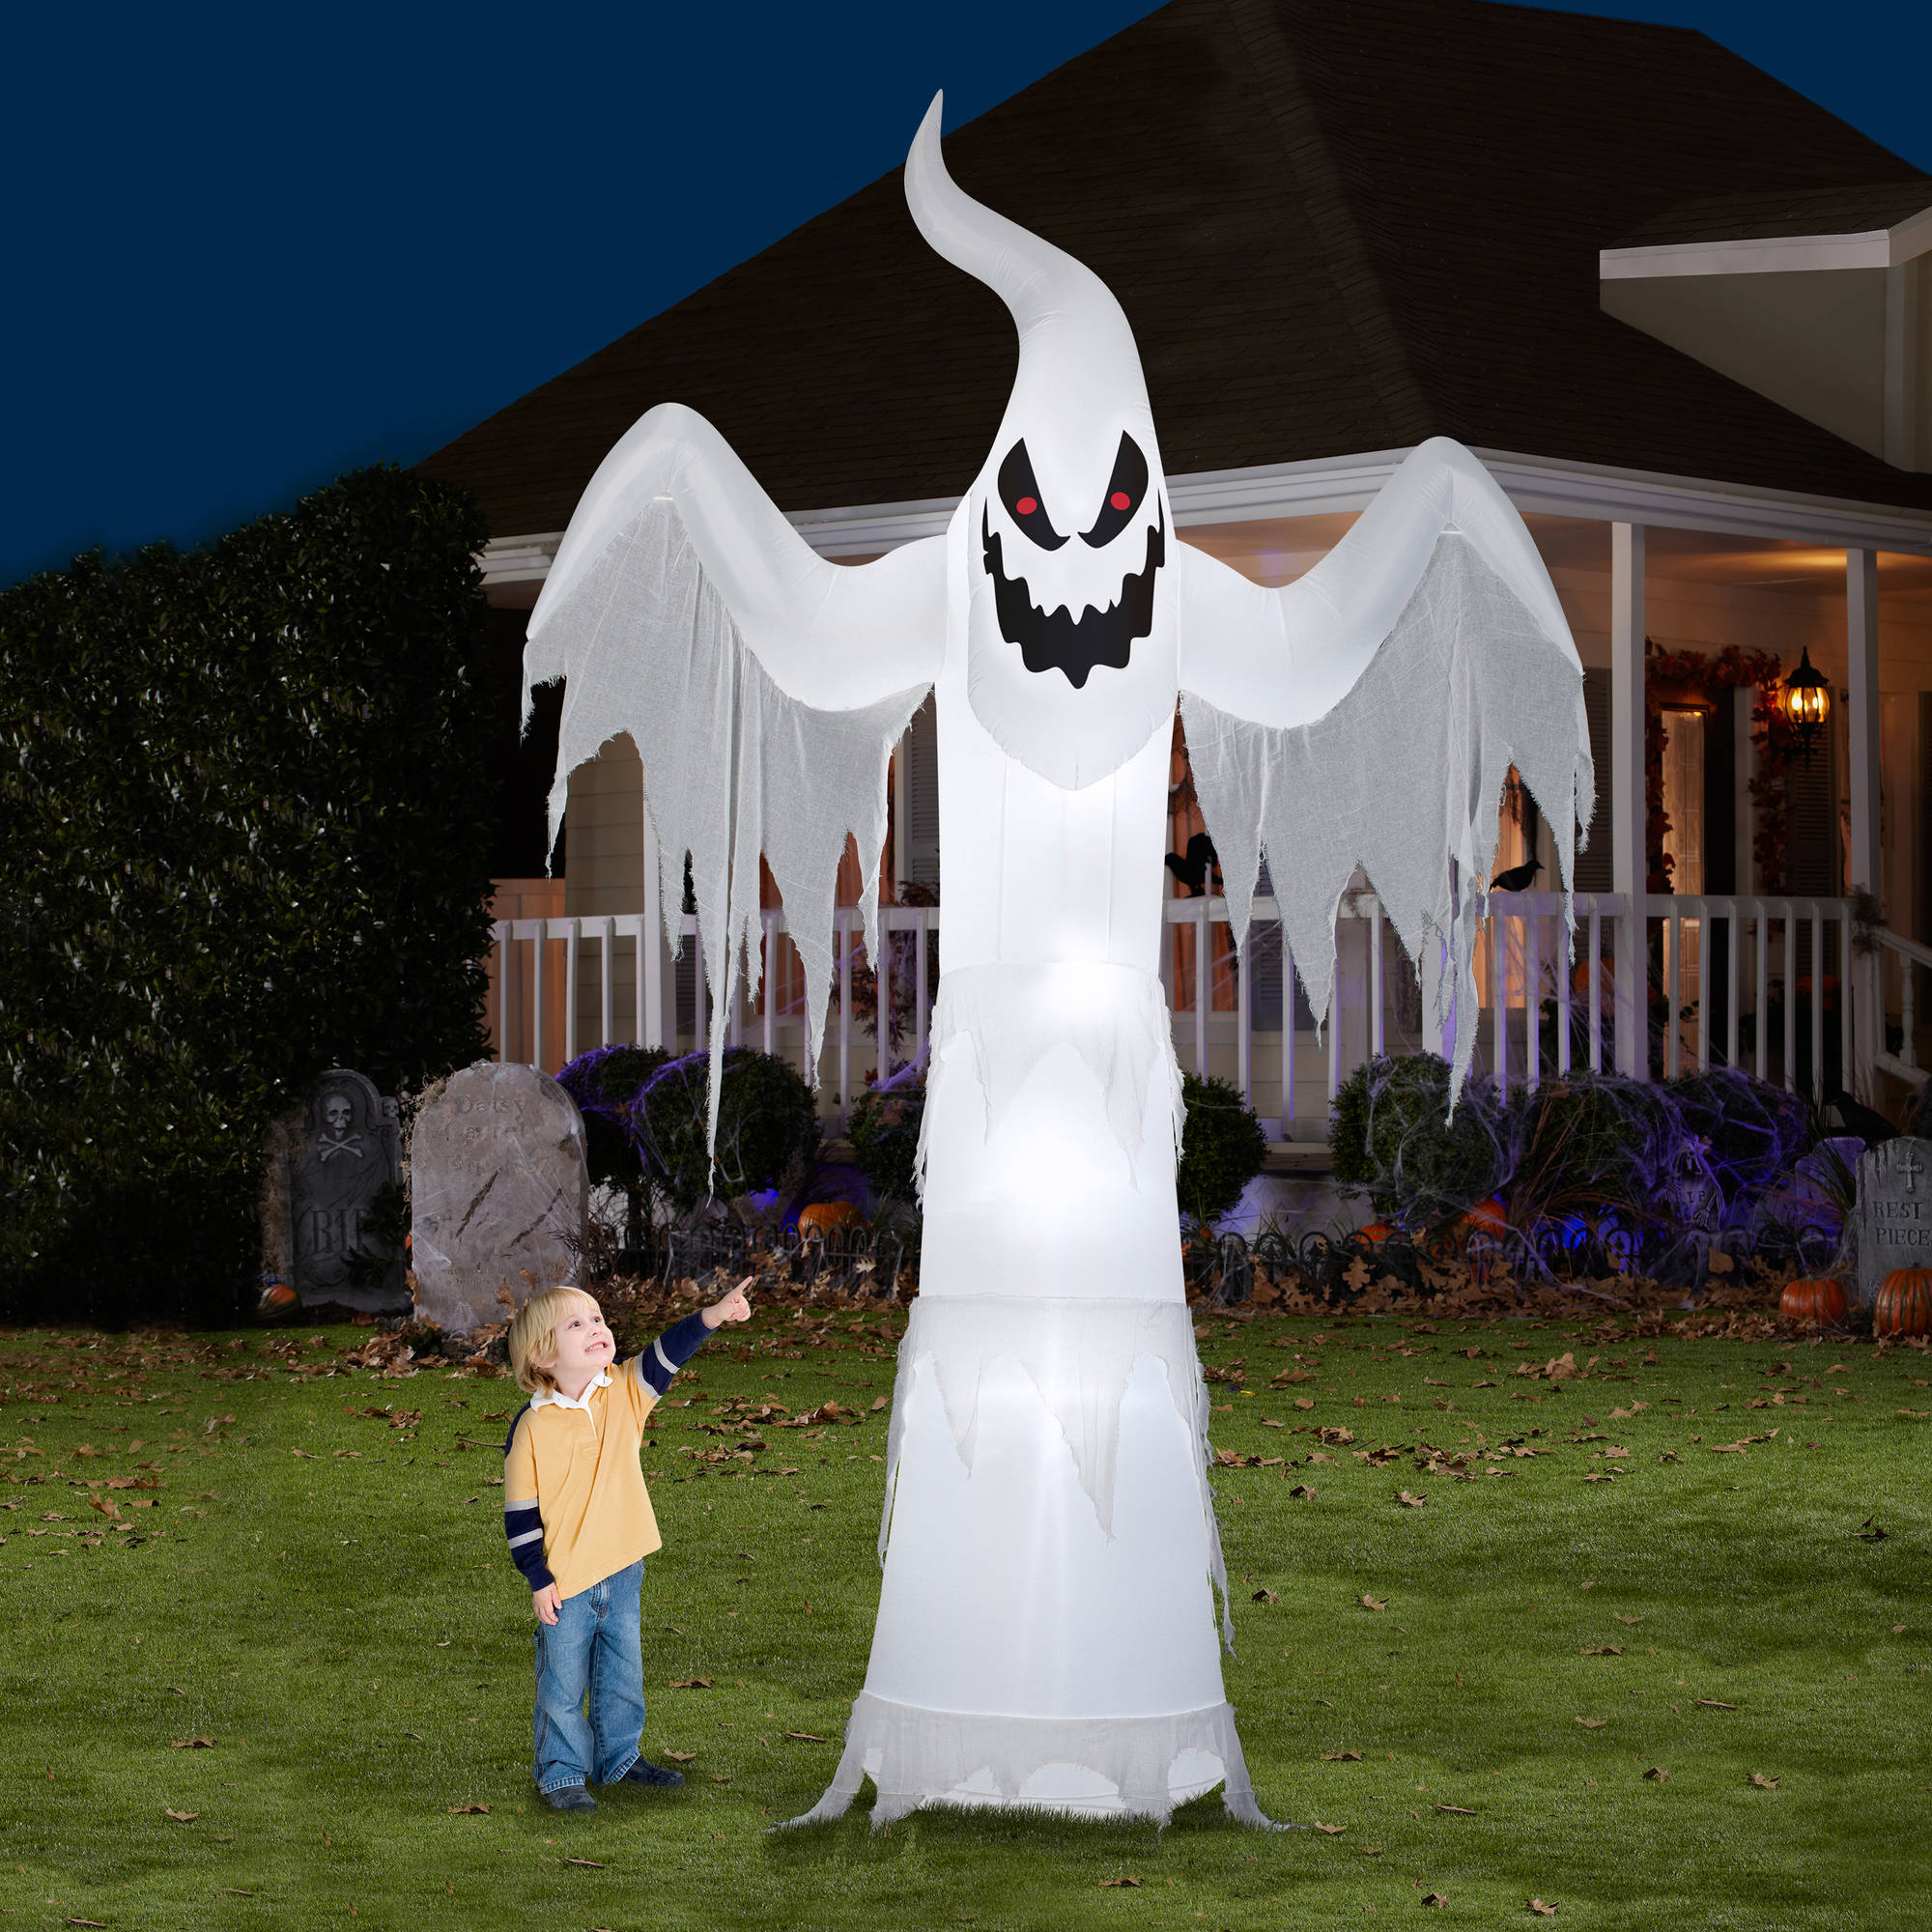 Gemmy Airblown Inflatable 12' X 7.5' Giant Ghost Halloween Decoration